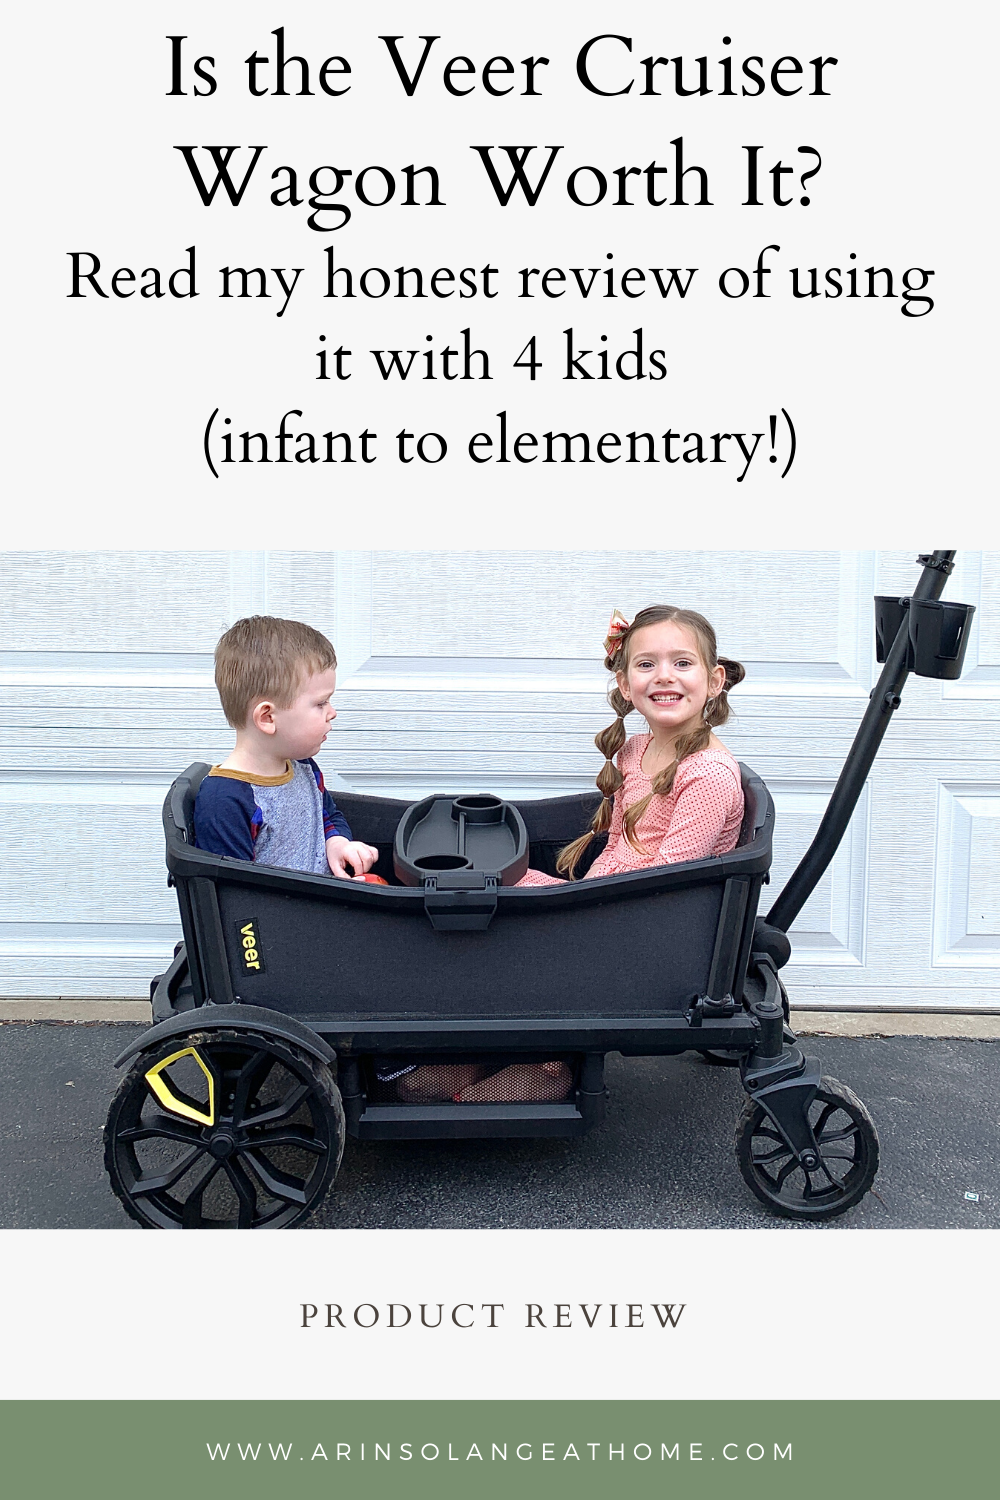 Are you looking into a wagon stroller? Find out if the Veer Cruiser wagon is worth it. A mom of 4 bought this (with her own money!) and reviews its use for her family ranging from baby to toddler to elementary school.